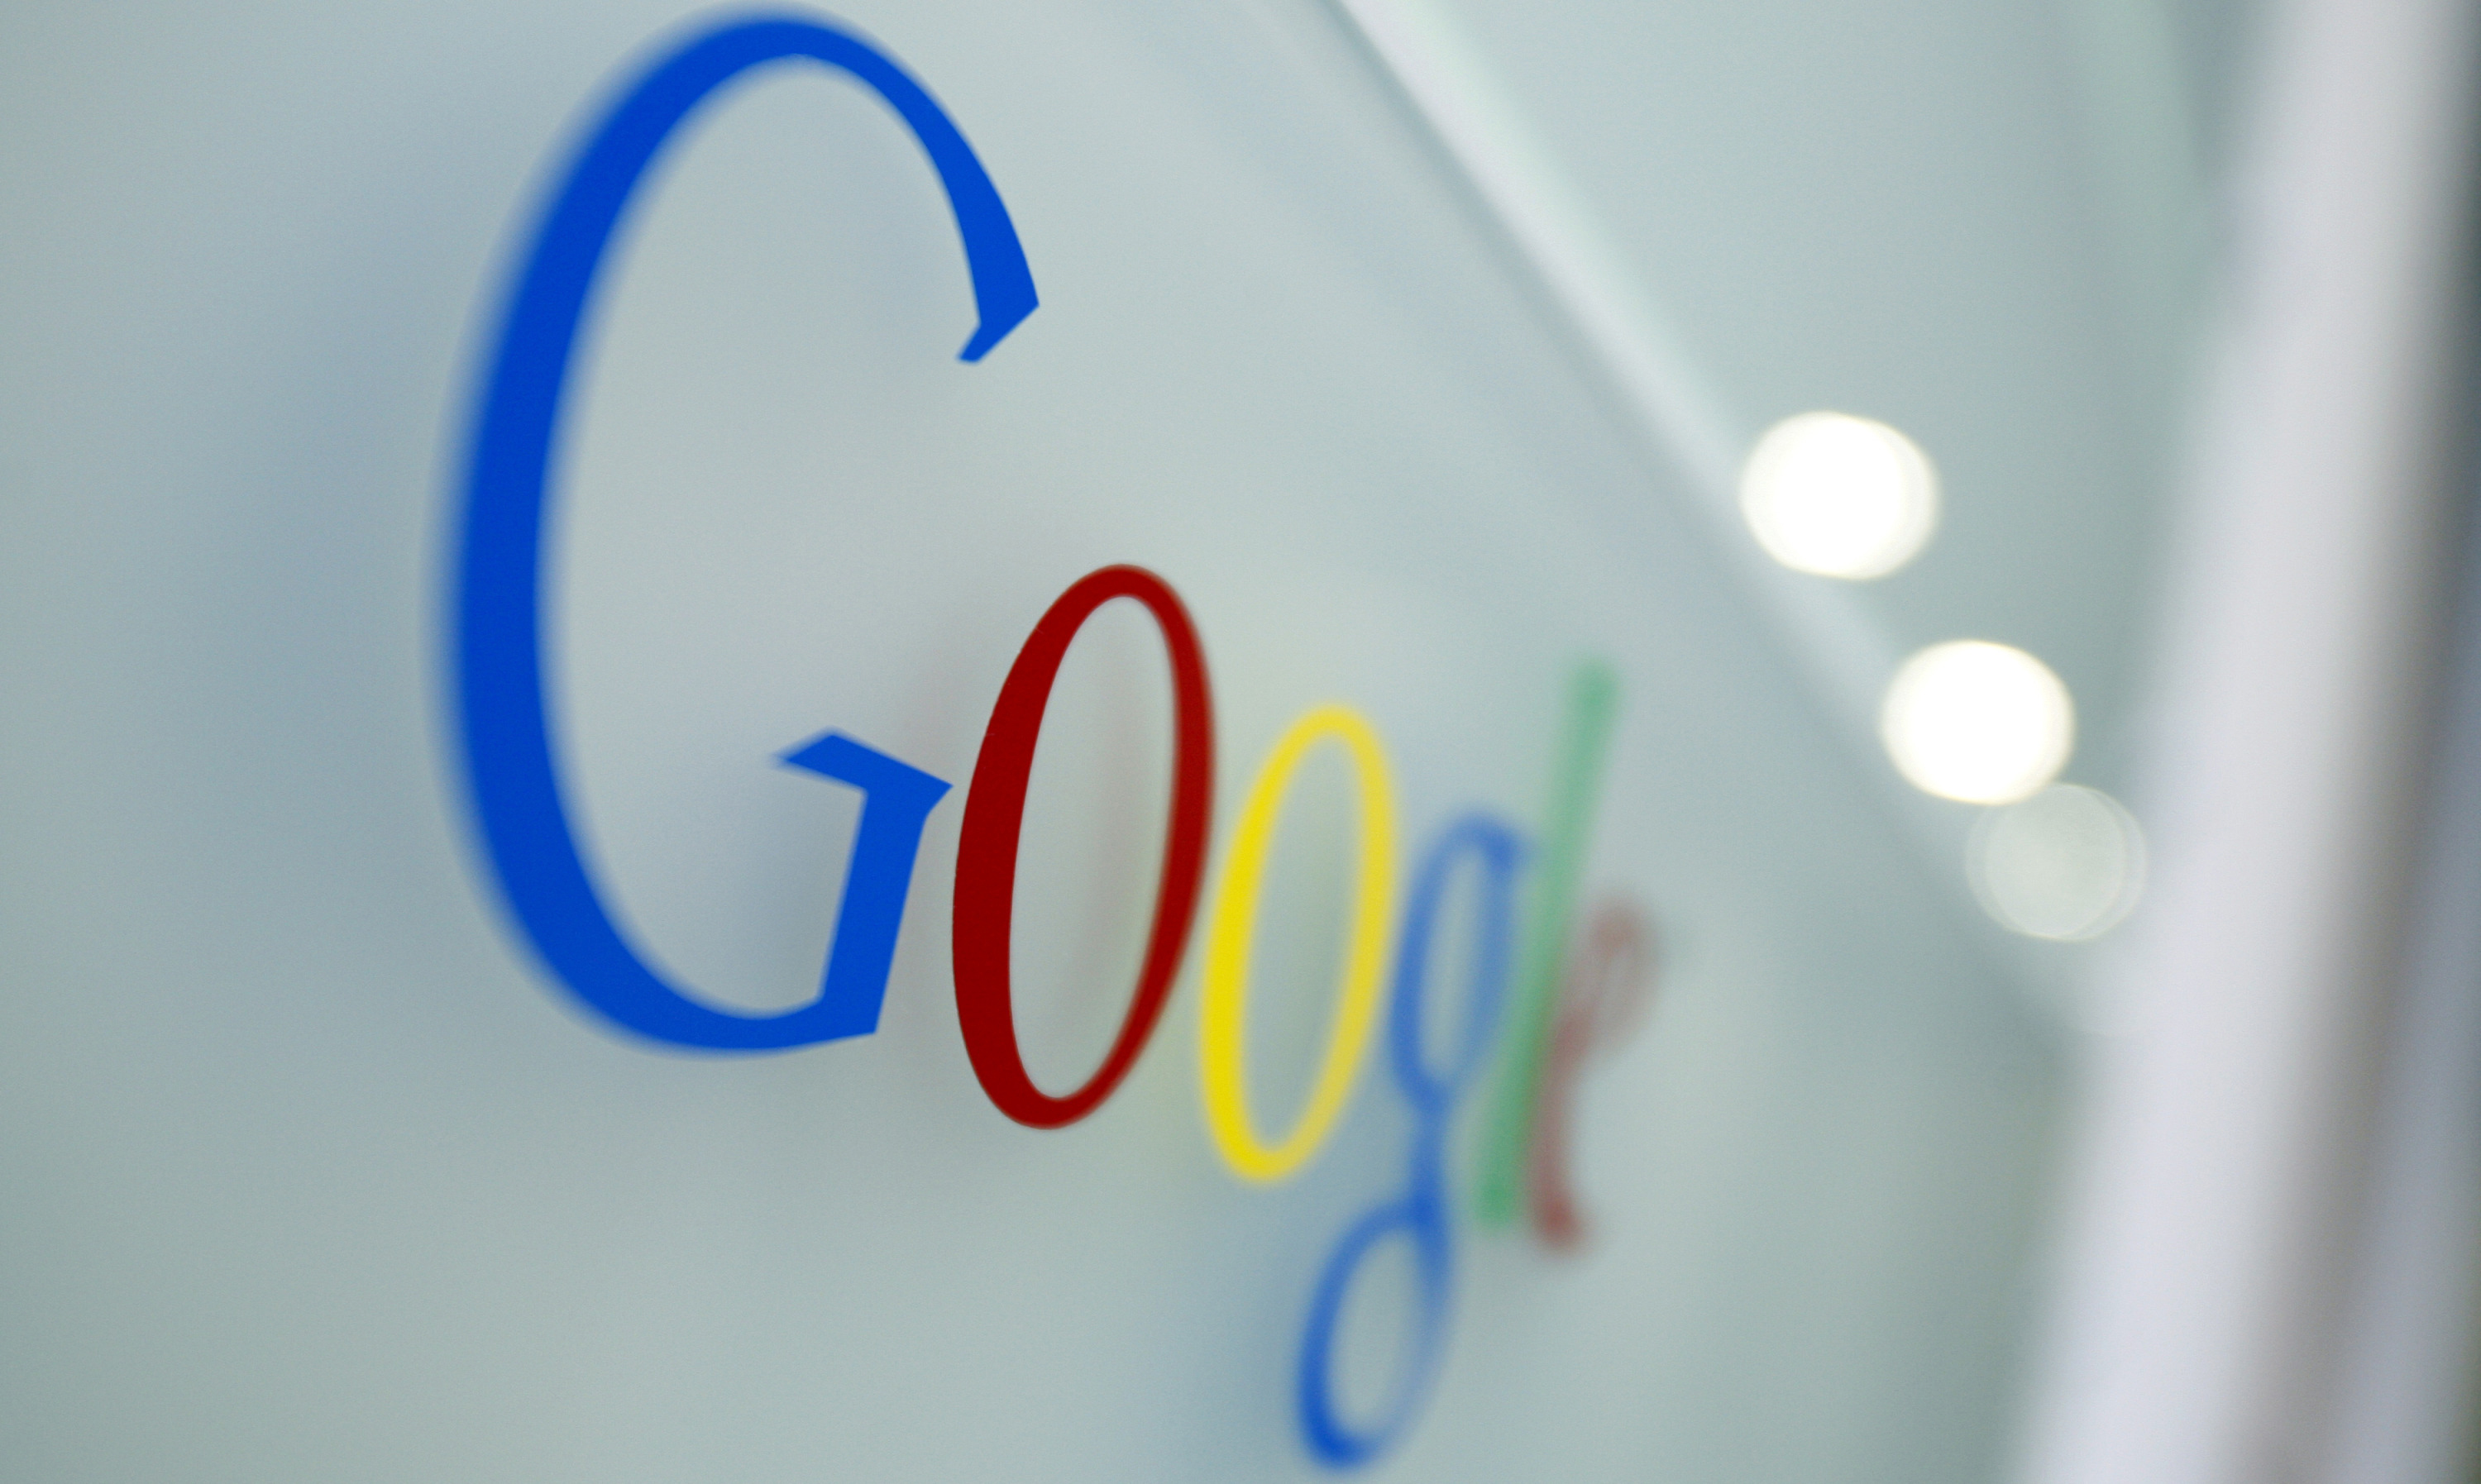 Google Revealed How Much It Paid for Google.com Domain